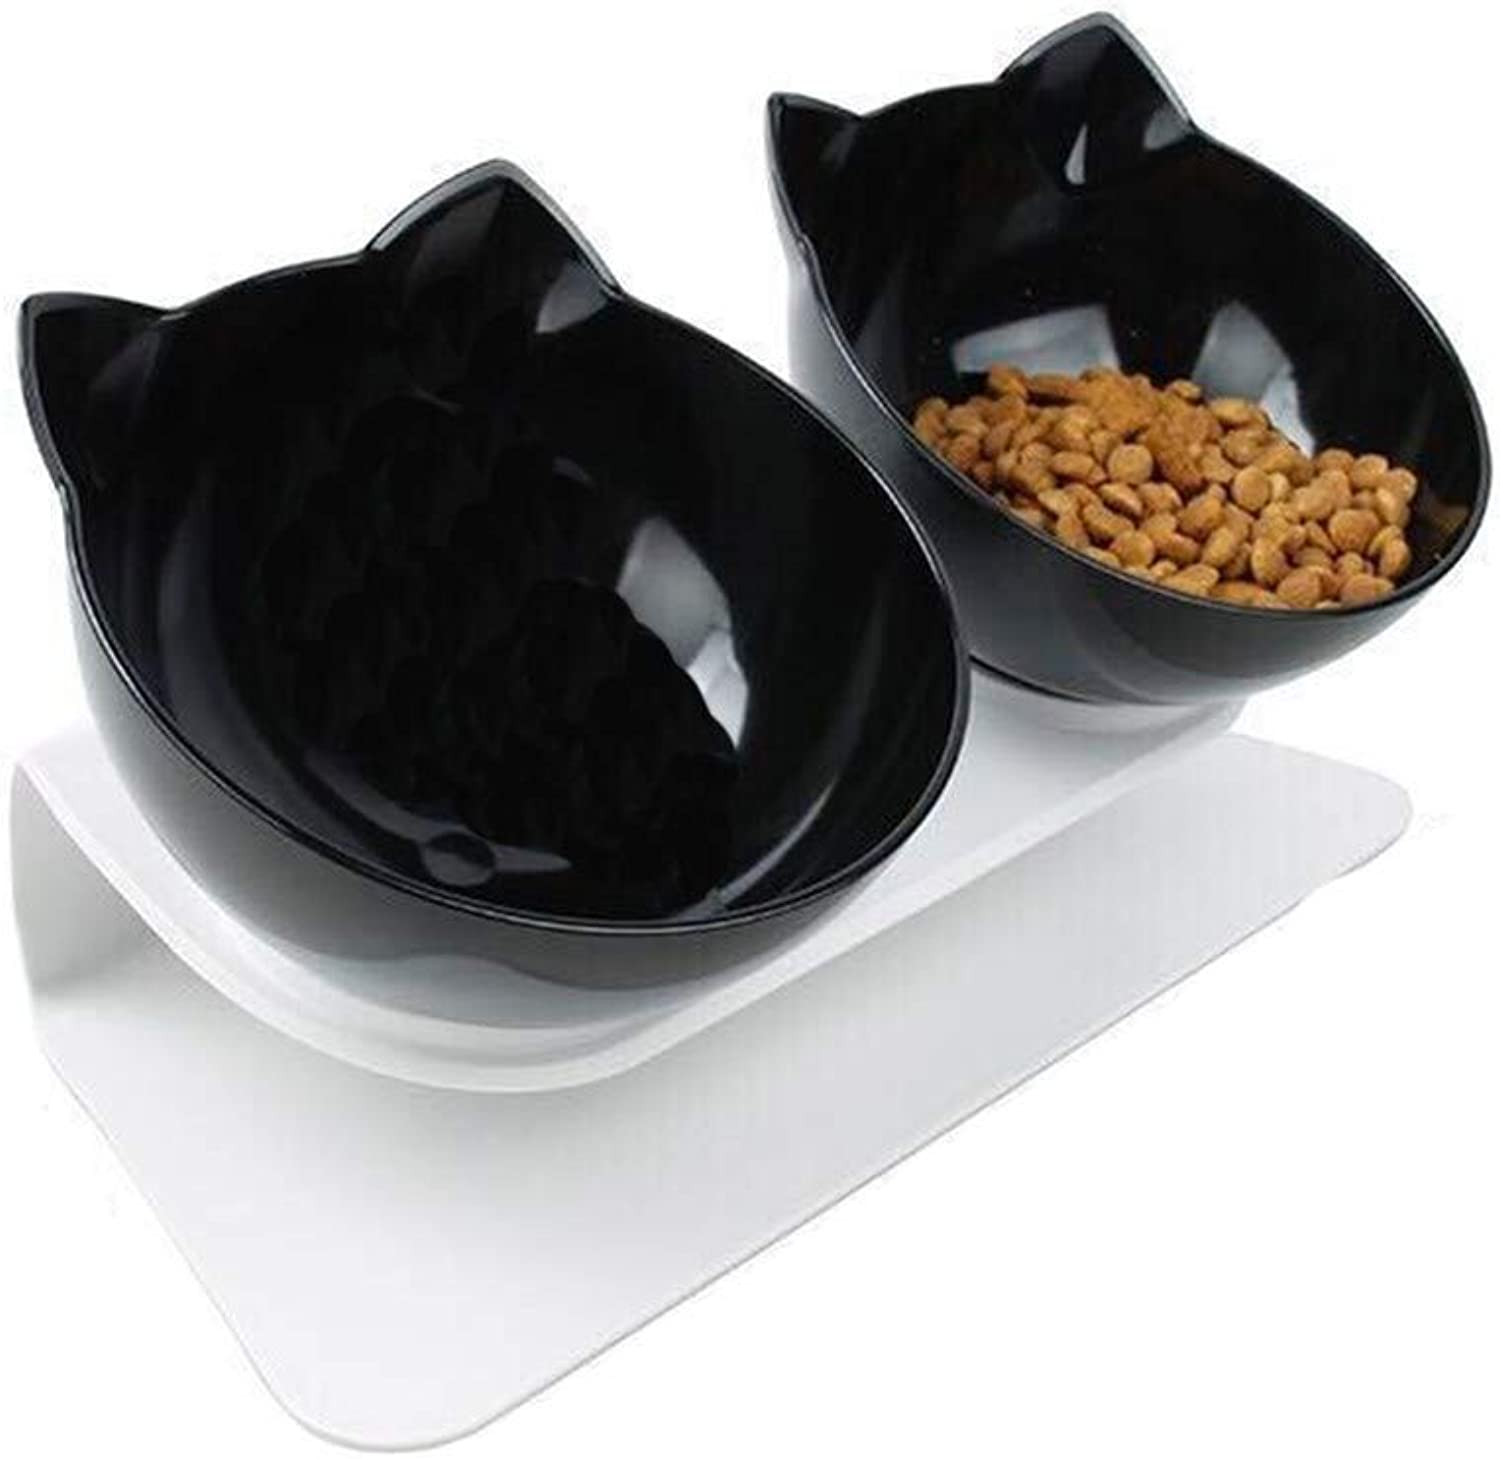 Pet feeder,Dog Cat Ceramics Easy to clean Easy to carry Solid and durable Natural Nonslip Adjustable high Detachable Double bowl